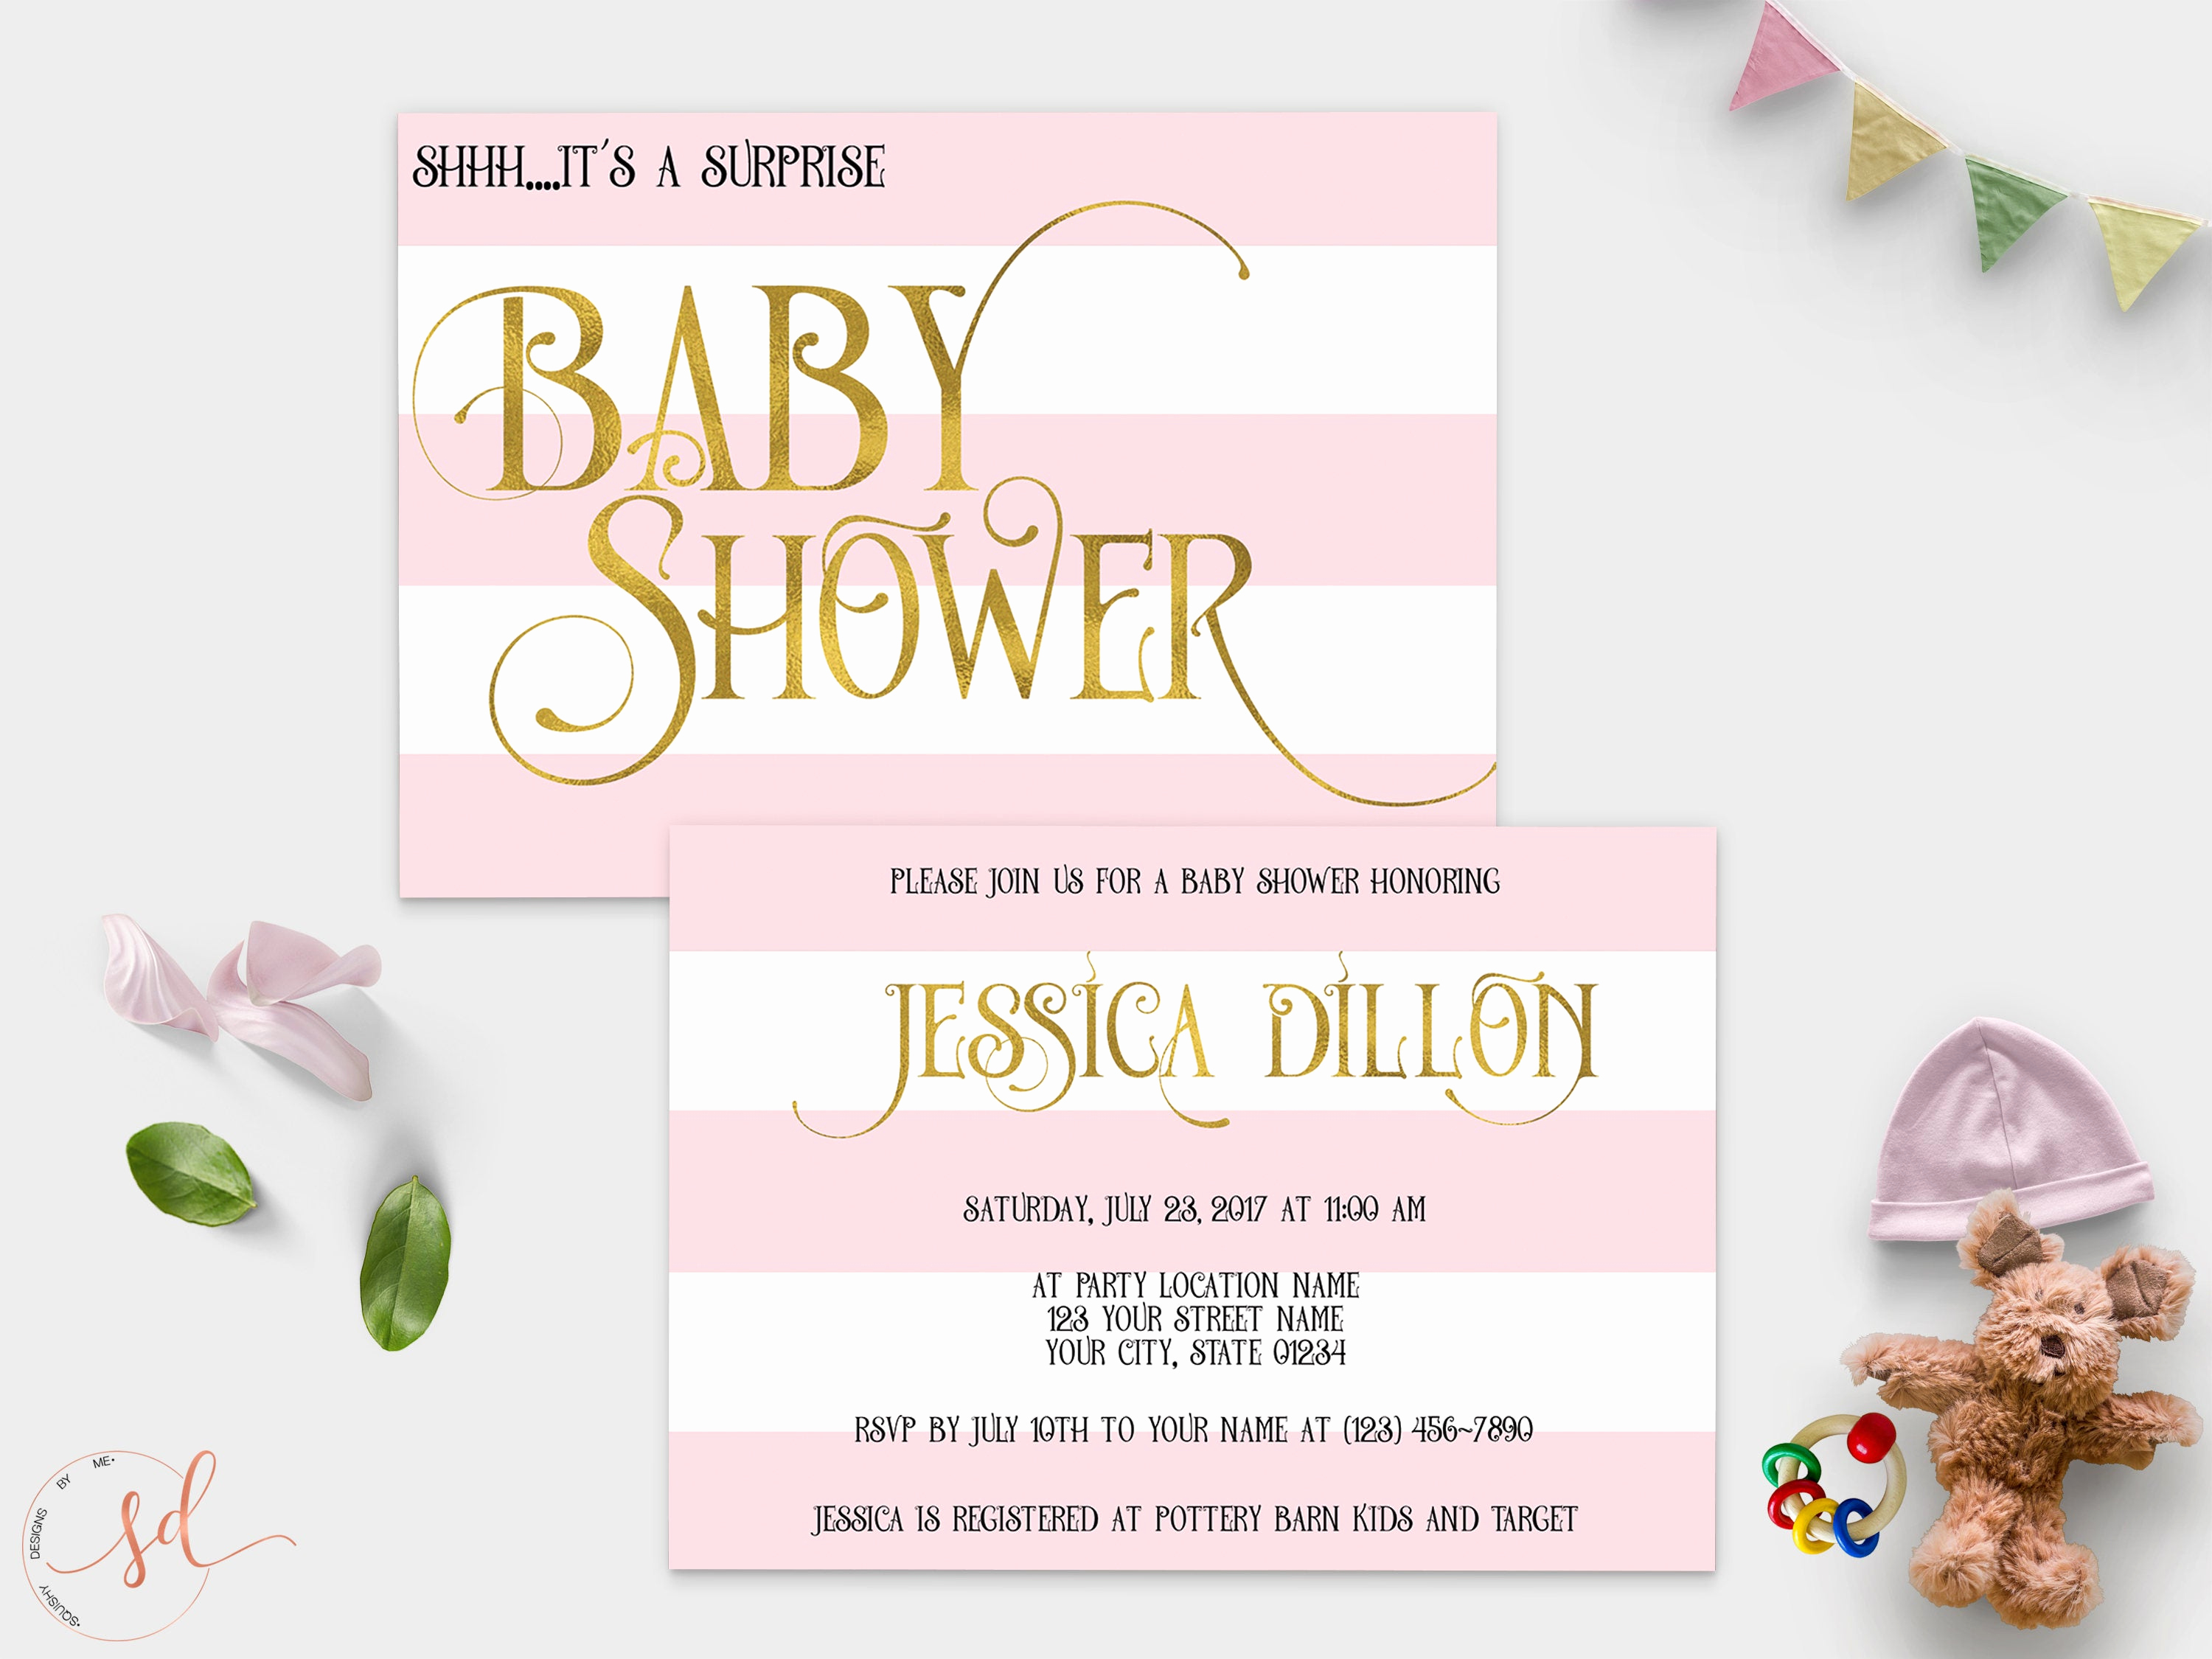 Surprise Baby Shower Invitation Beautiful Surprise Baby Shower Invitation Pink White Gold Stripes